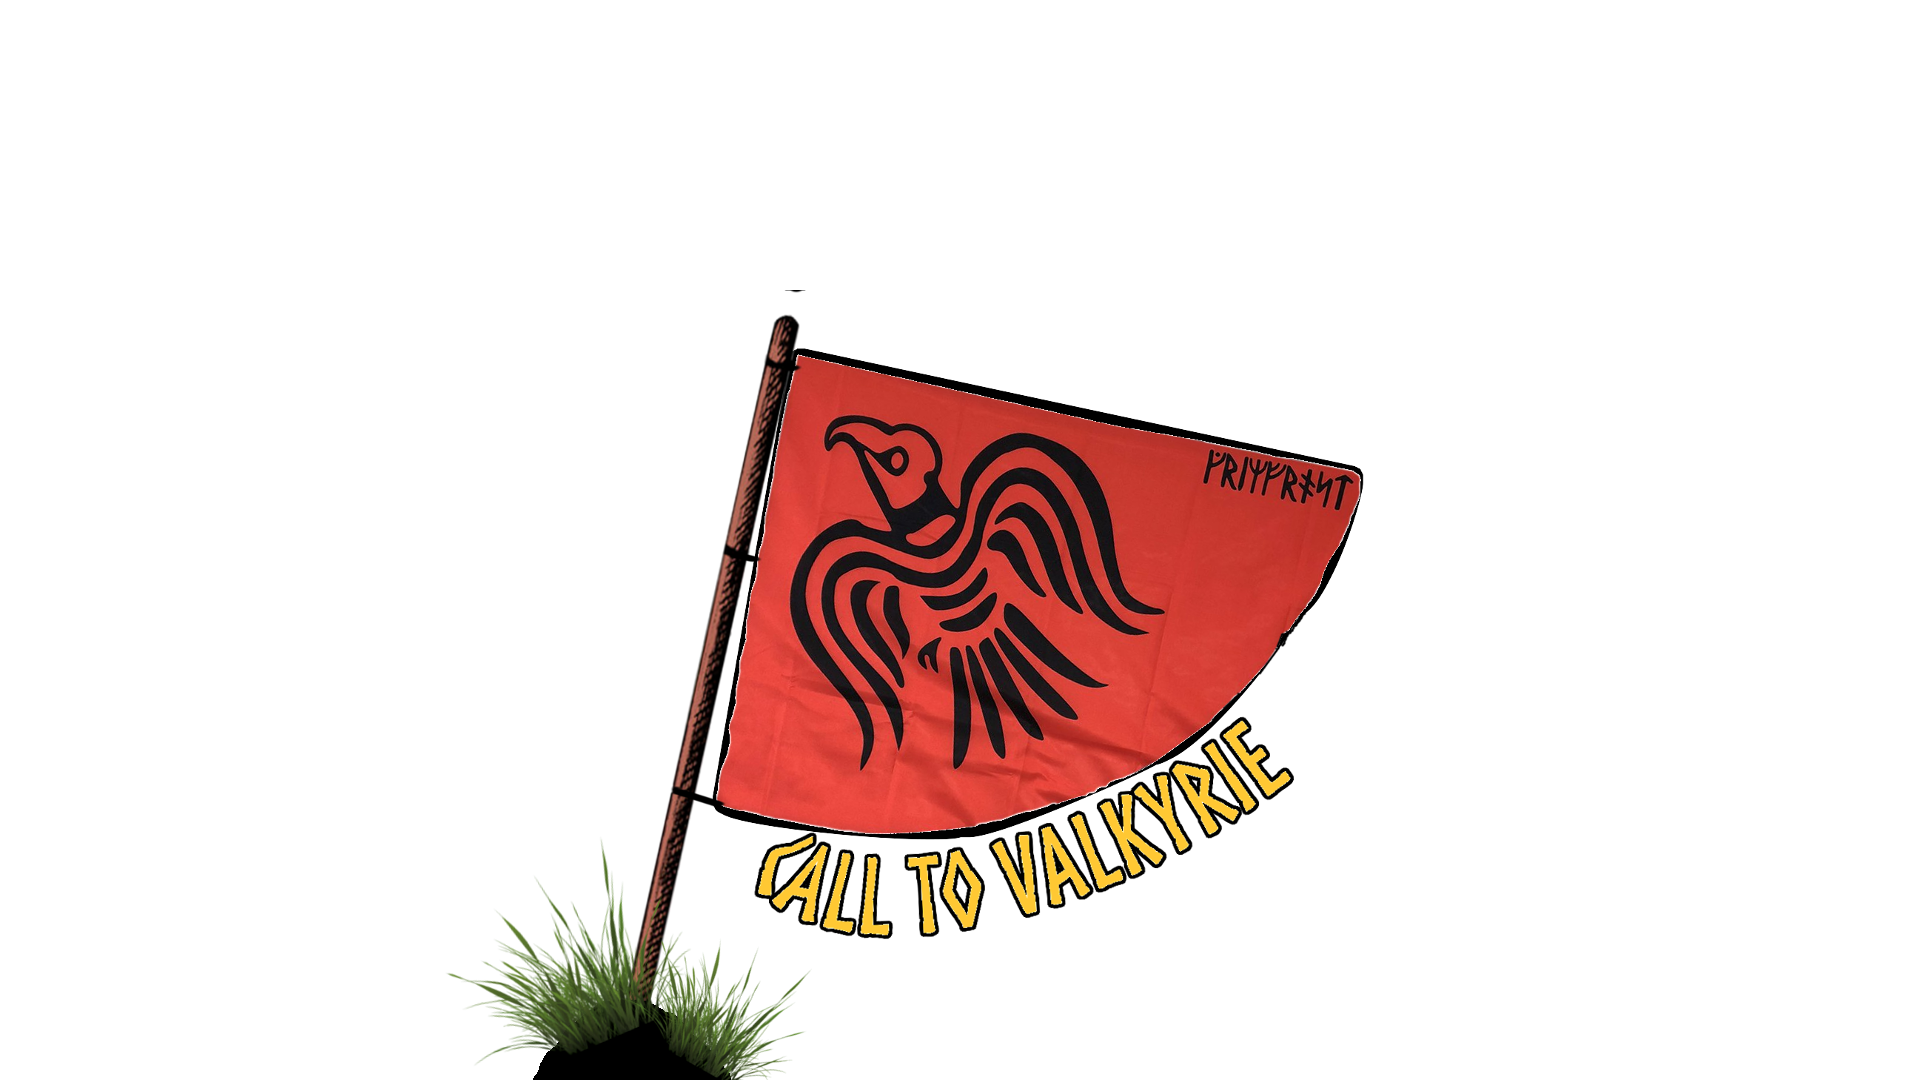 Call to Valkyrie